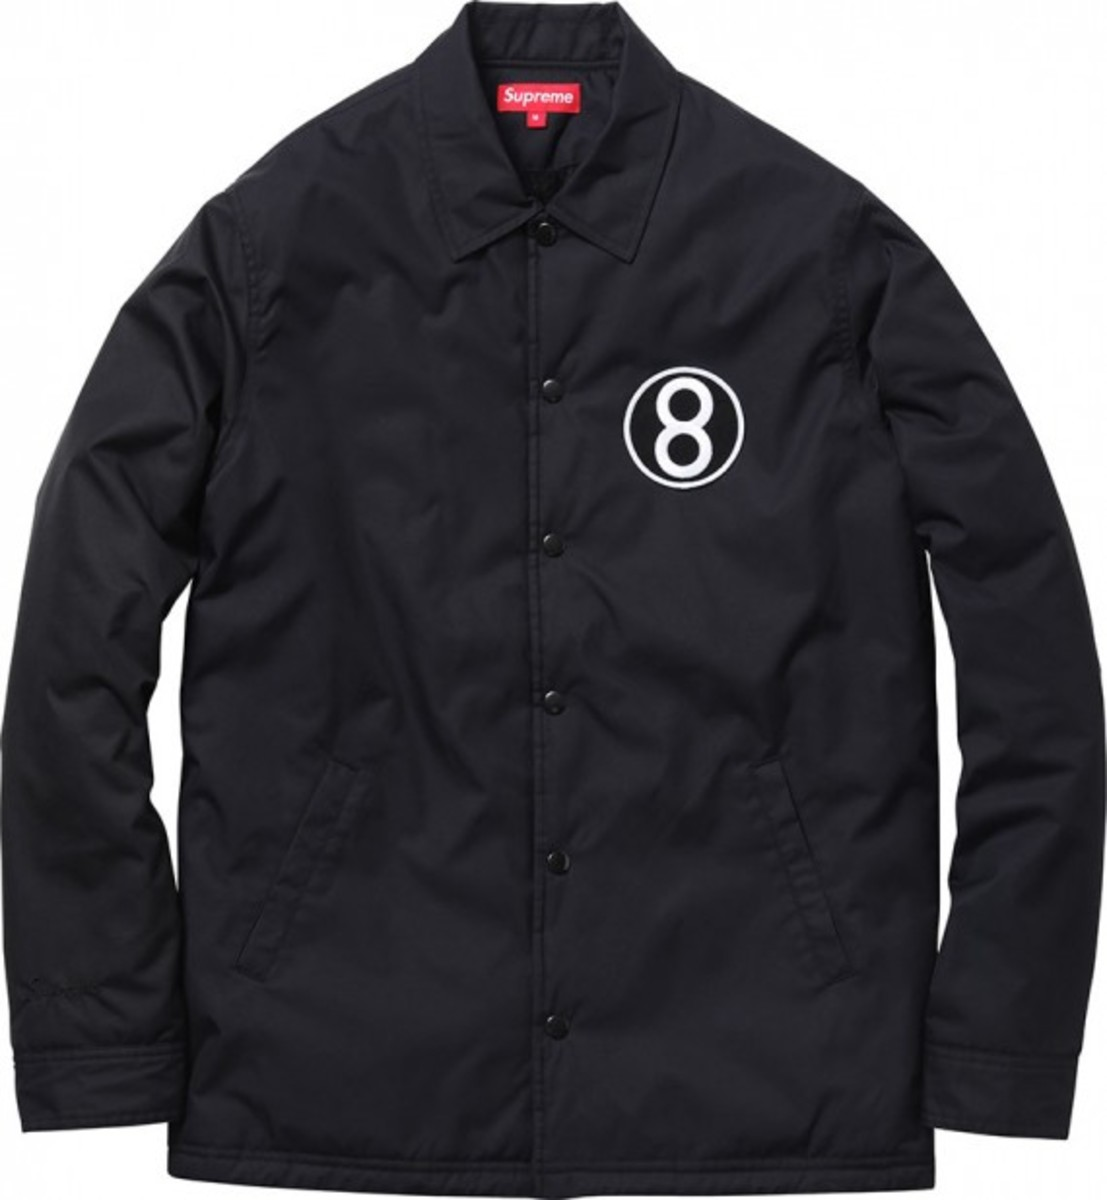 7-8_ball_coaches_jacket-zoom_1345455019